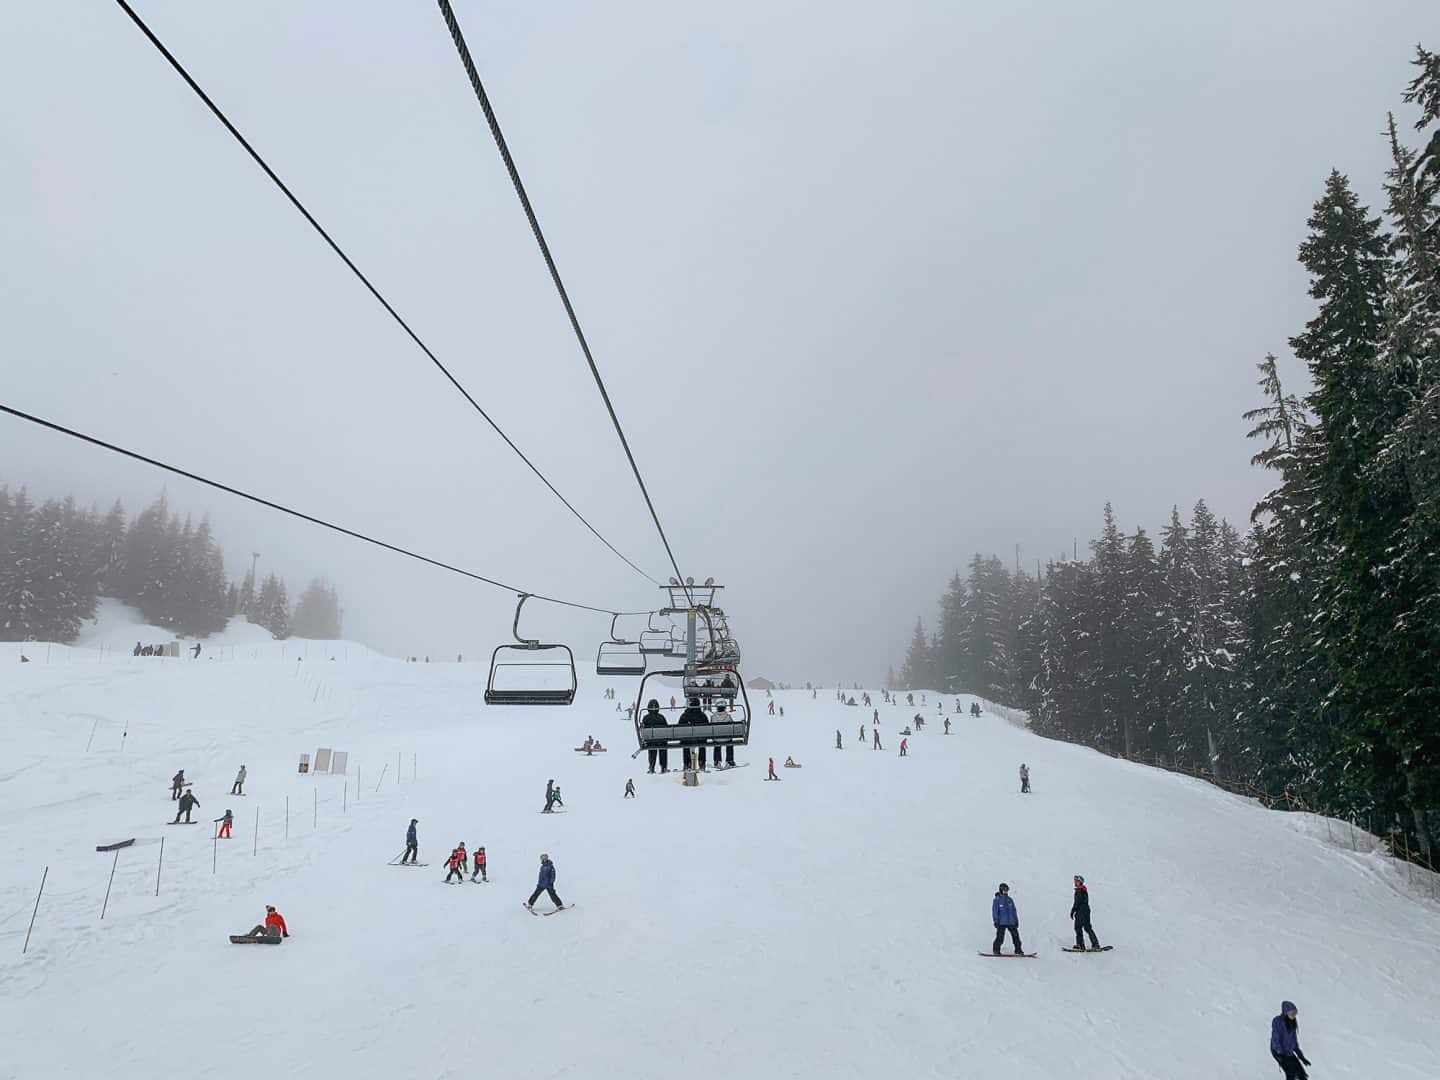 Skiing at Cypress Mountain in Vancouver, British Columbia.